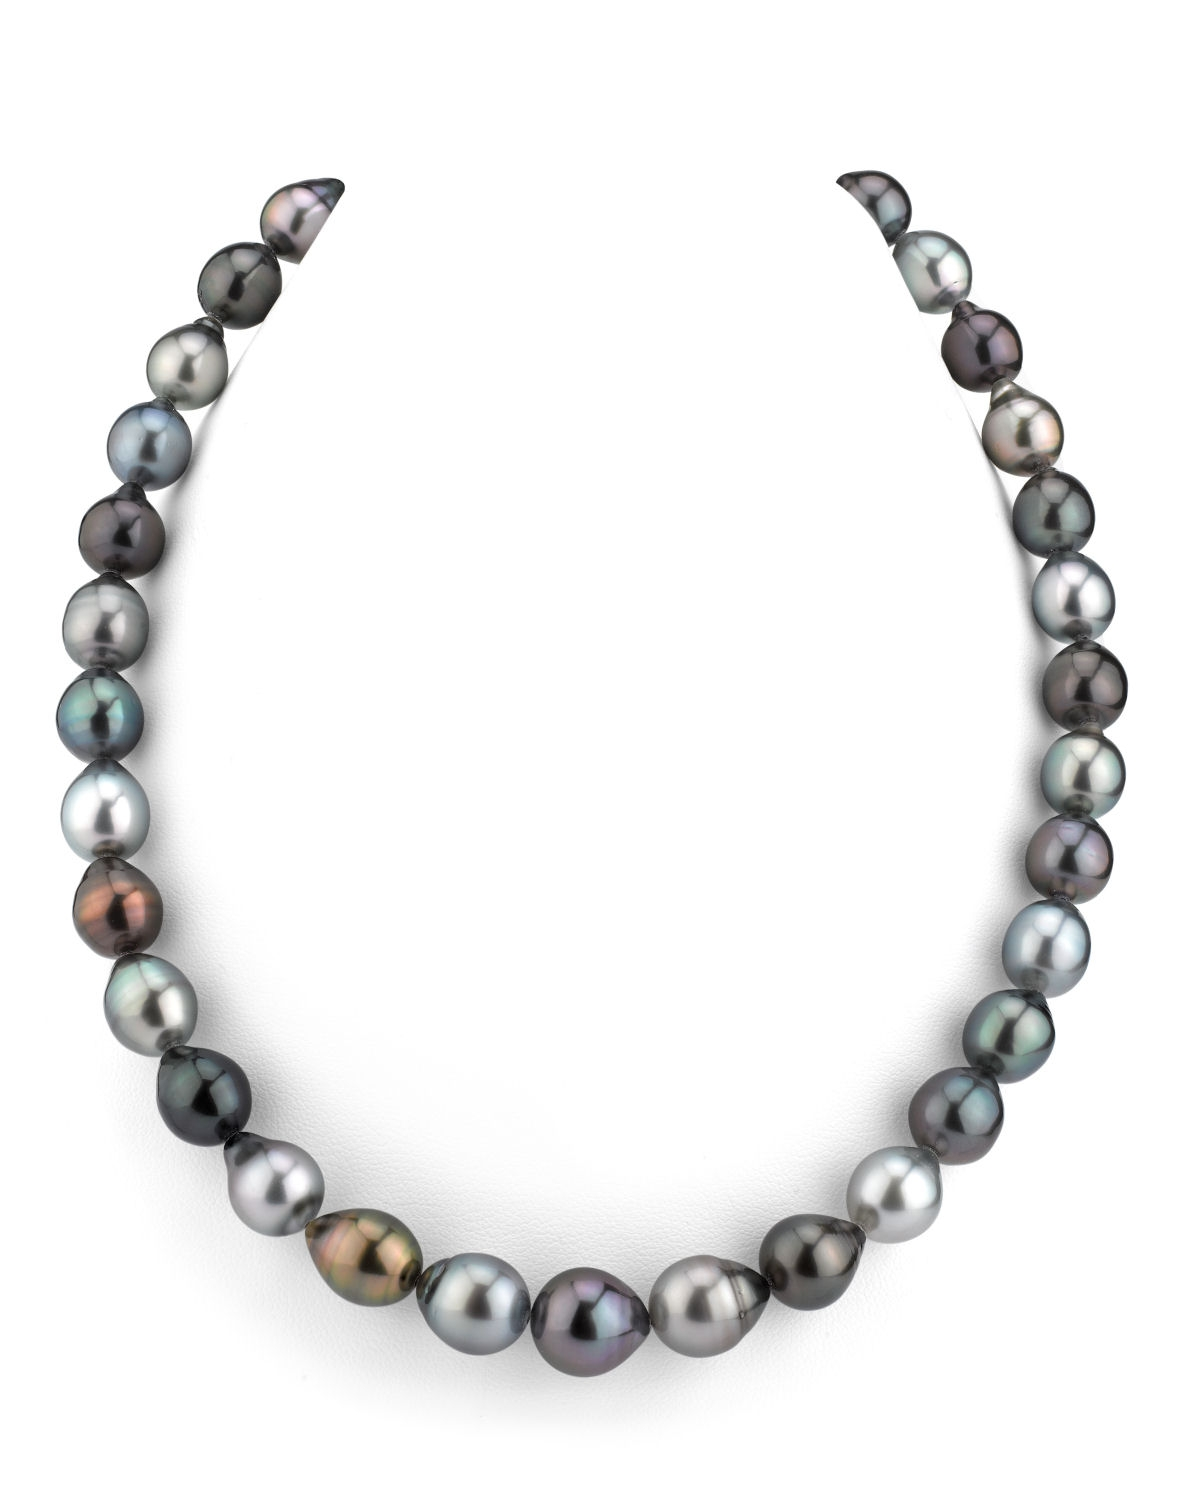 9-11mm Tahitian South Sea Multicolor Drop-Shape Pearl Necklace